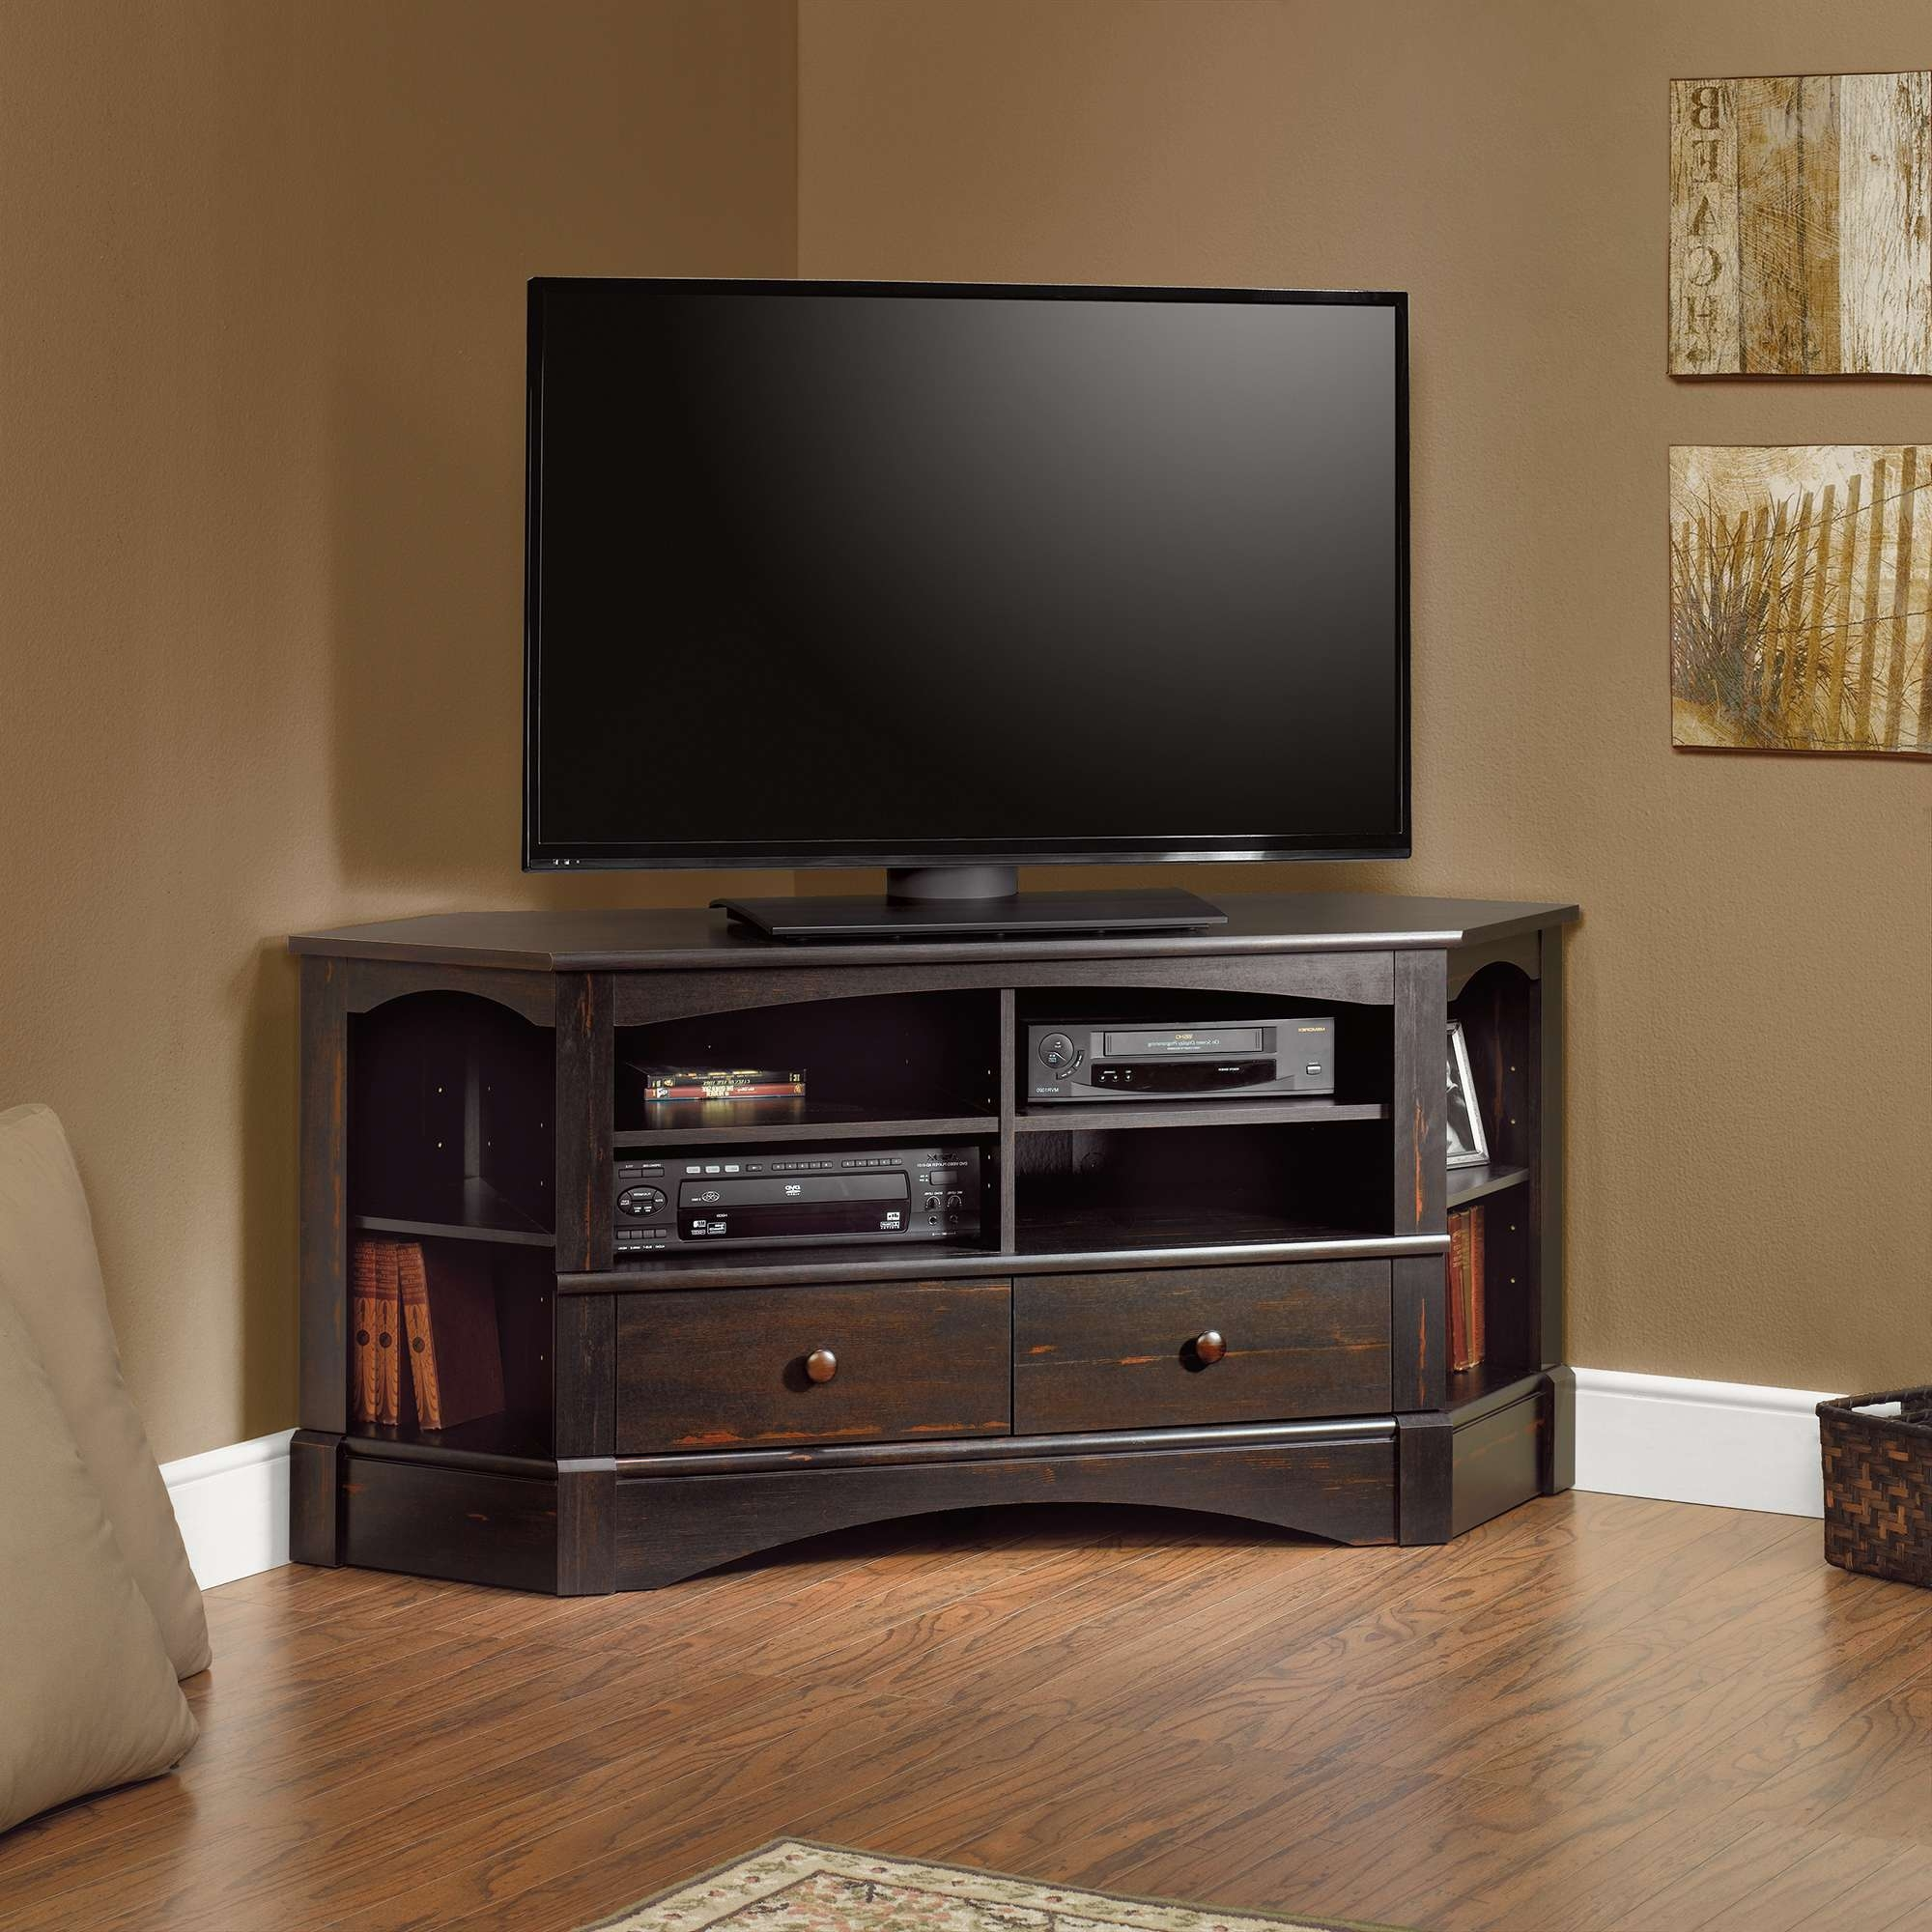 Harbor View | Corner Entertainment Credenza | 402902 | Sauder For Solid Wood Corner Tv Cabinets (View 3 of 20)